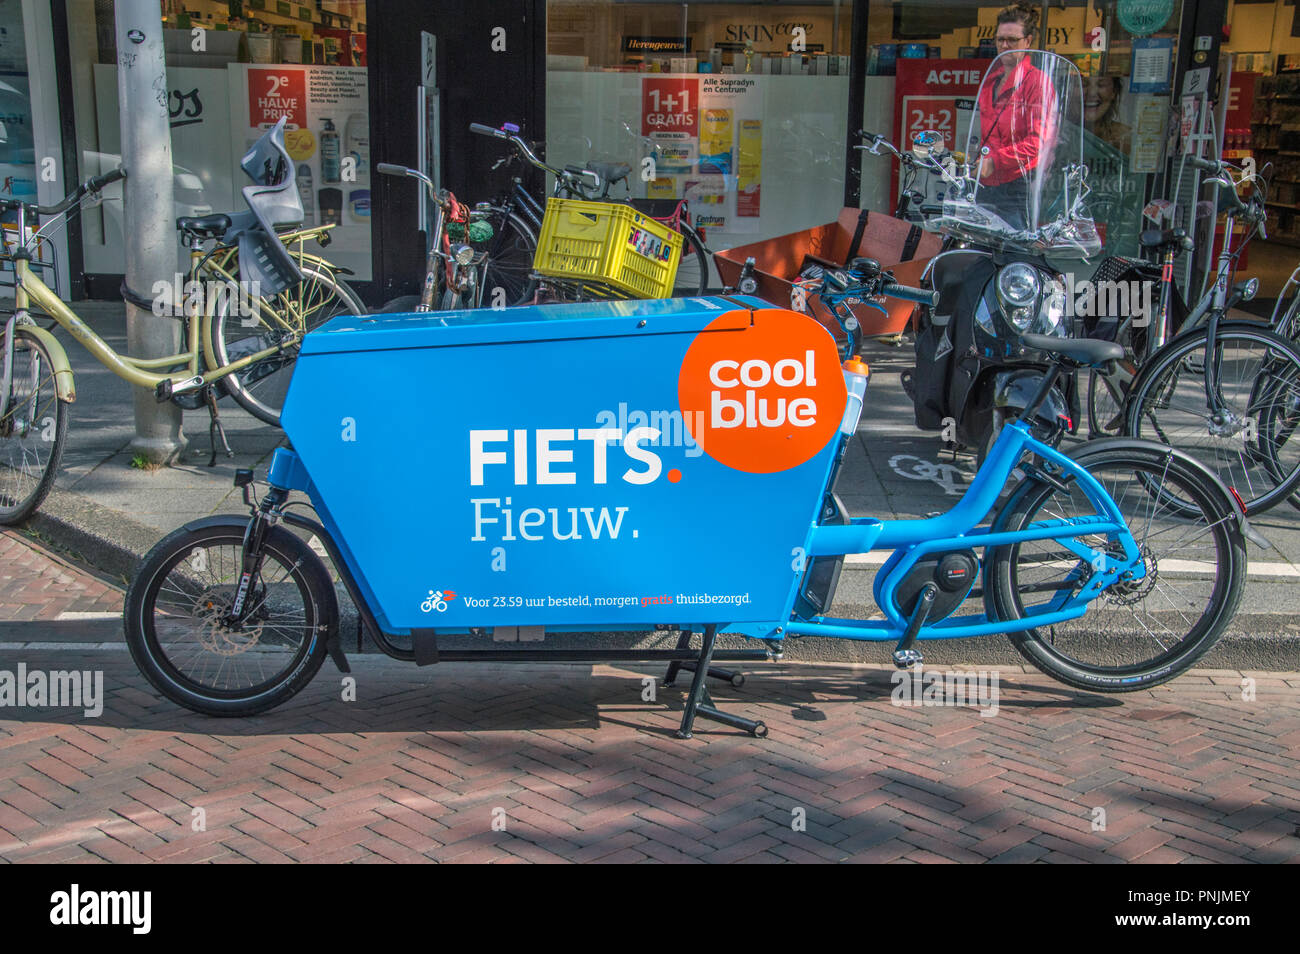 Bicycle Delivery Service From Coolblue At Amsterdam The Netherlands 2018 - Stock Image